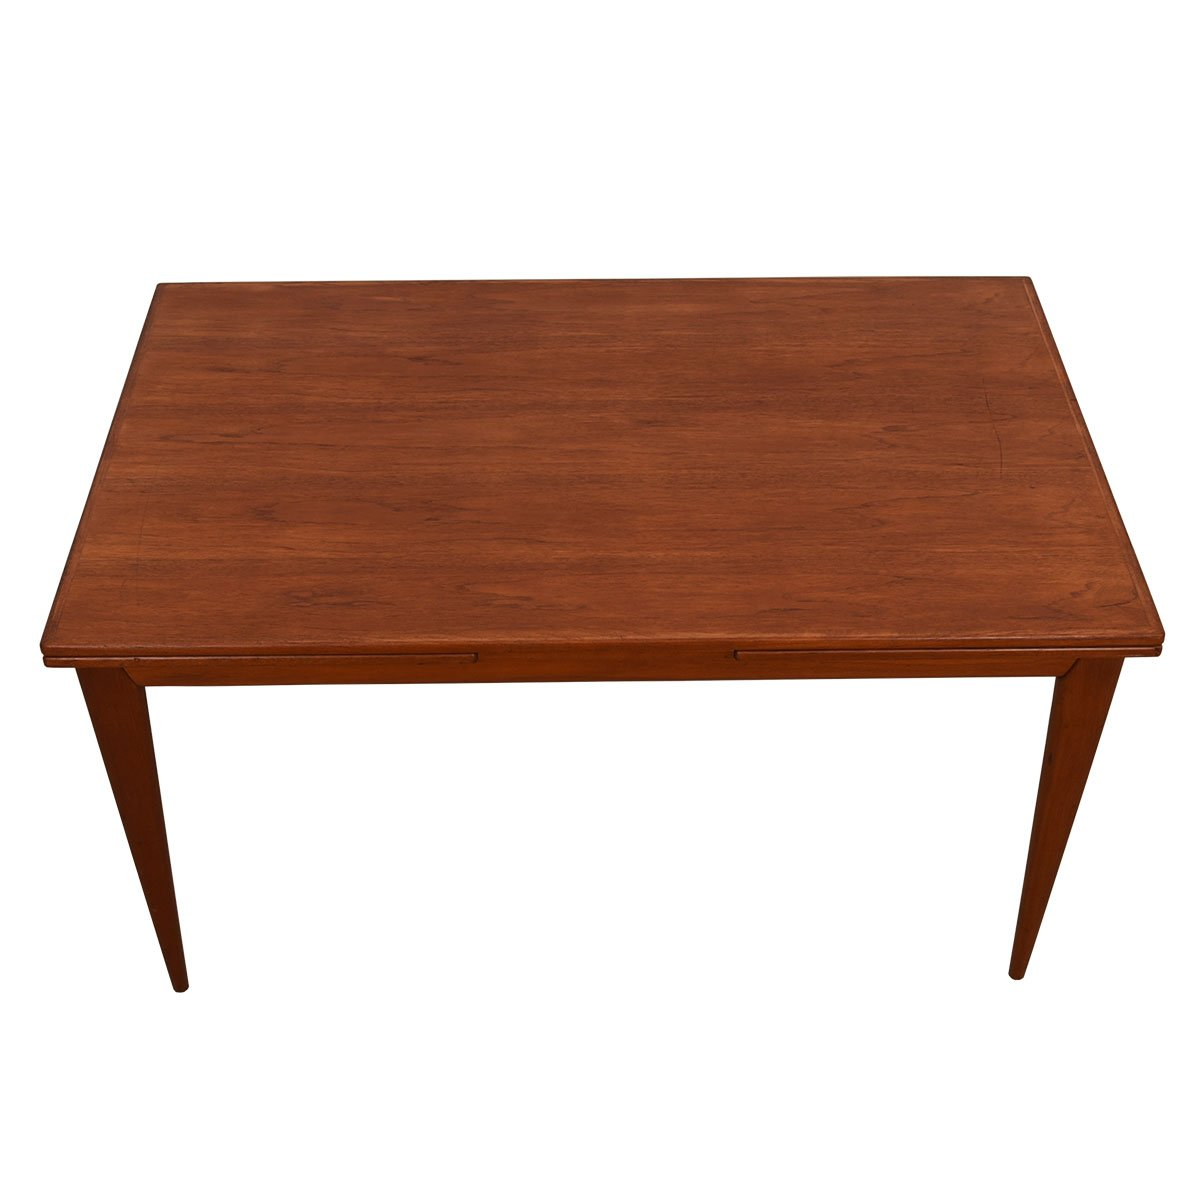 Danish Modern Large Teak Dining Table